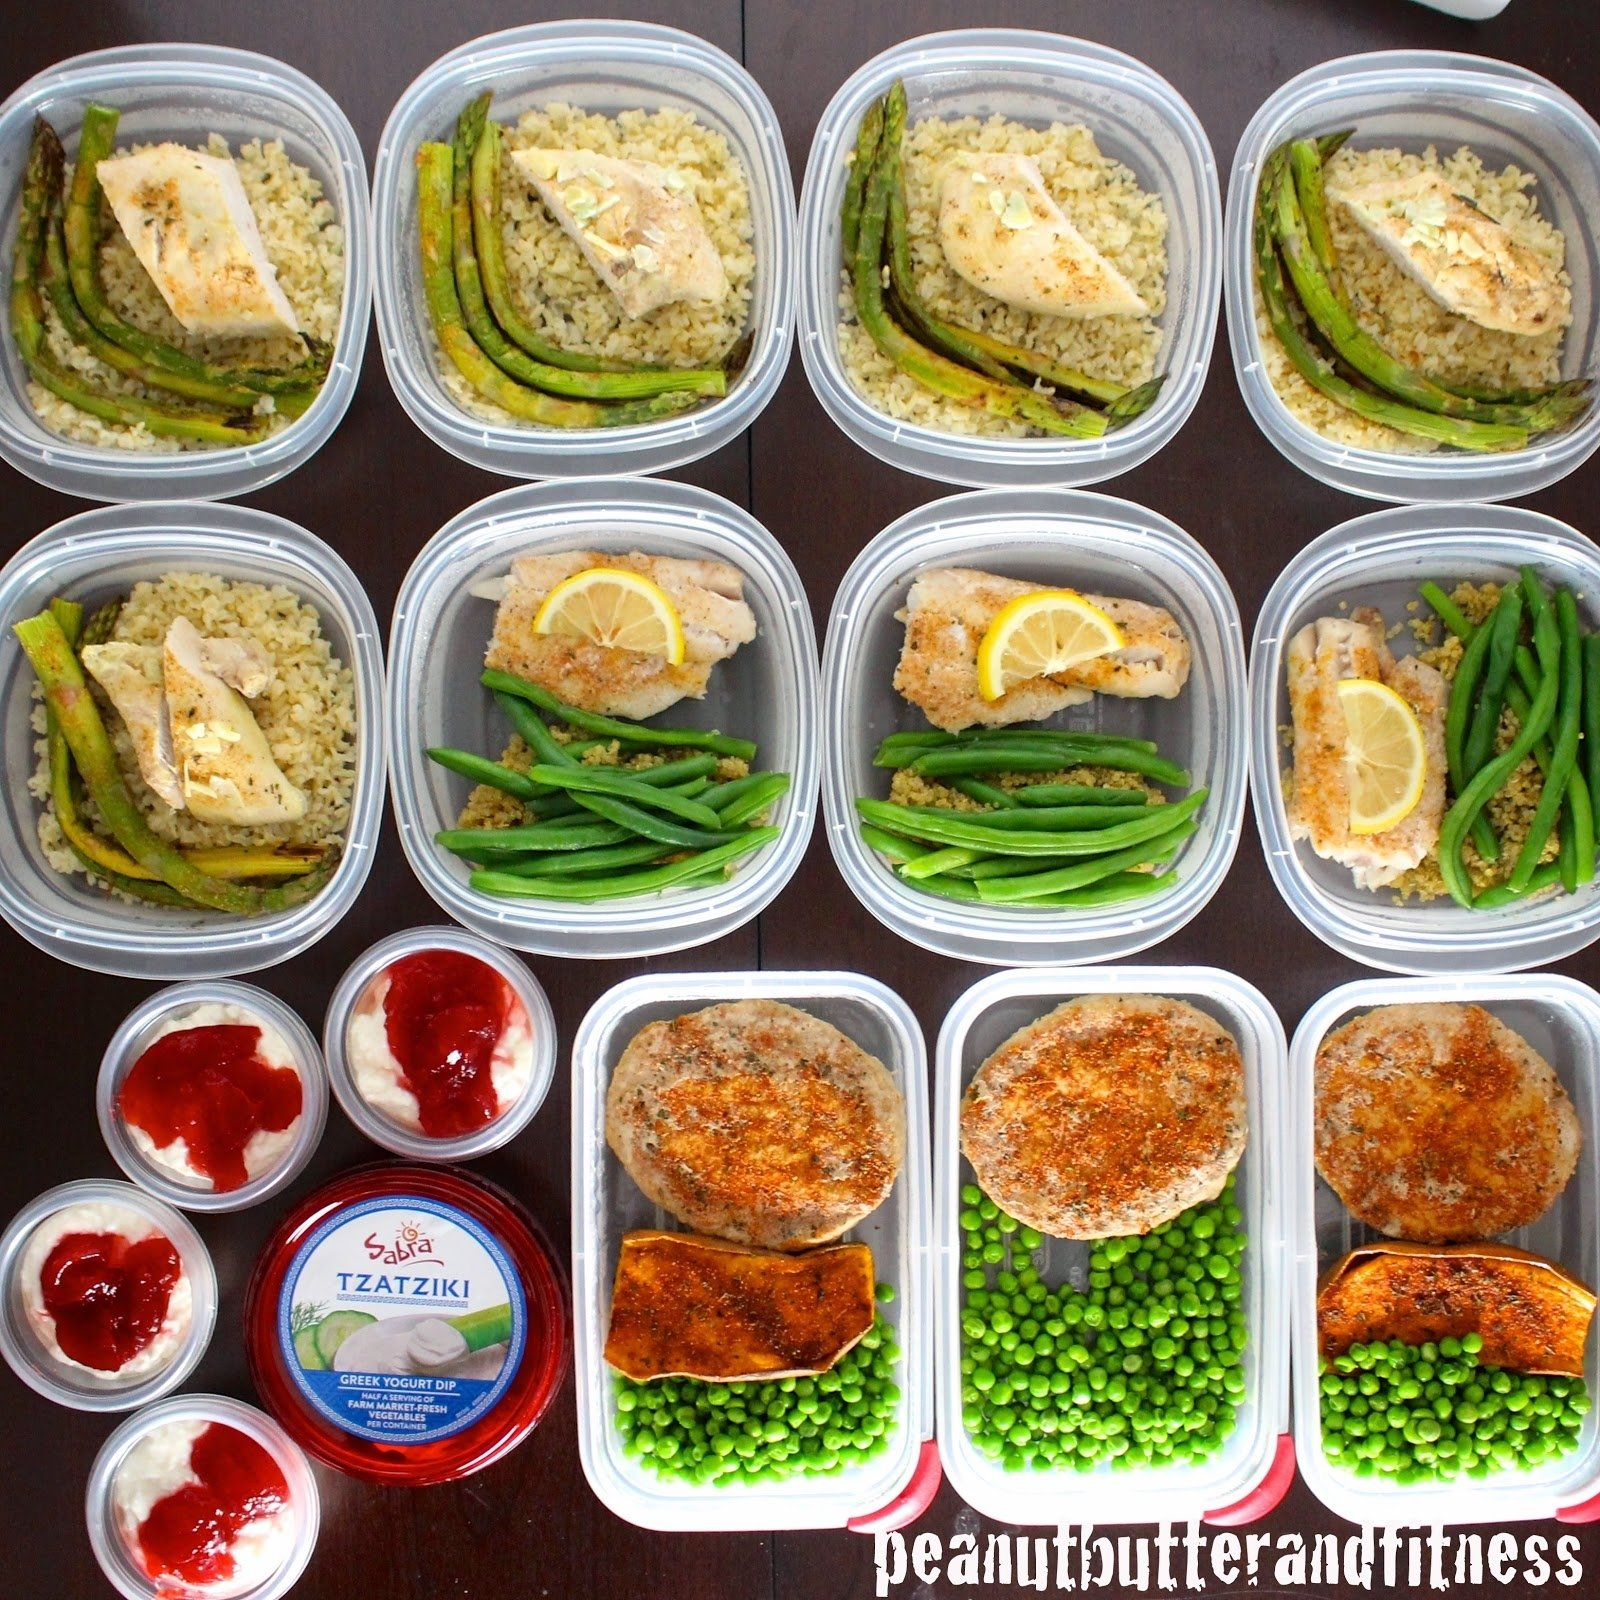 10 Unique Meal Ideas For The Week meal prep ideas week of february 2nd peanut butter and fitness